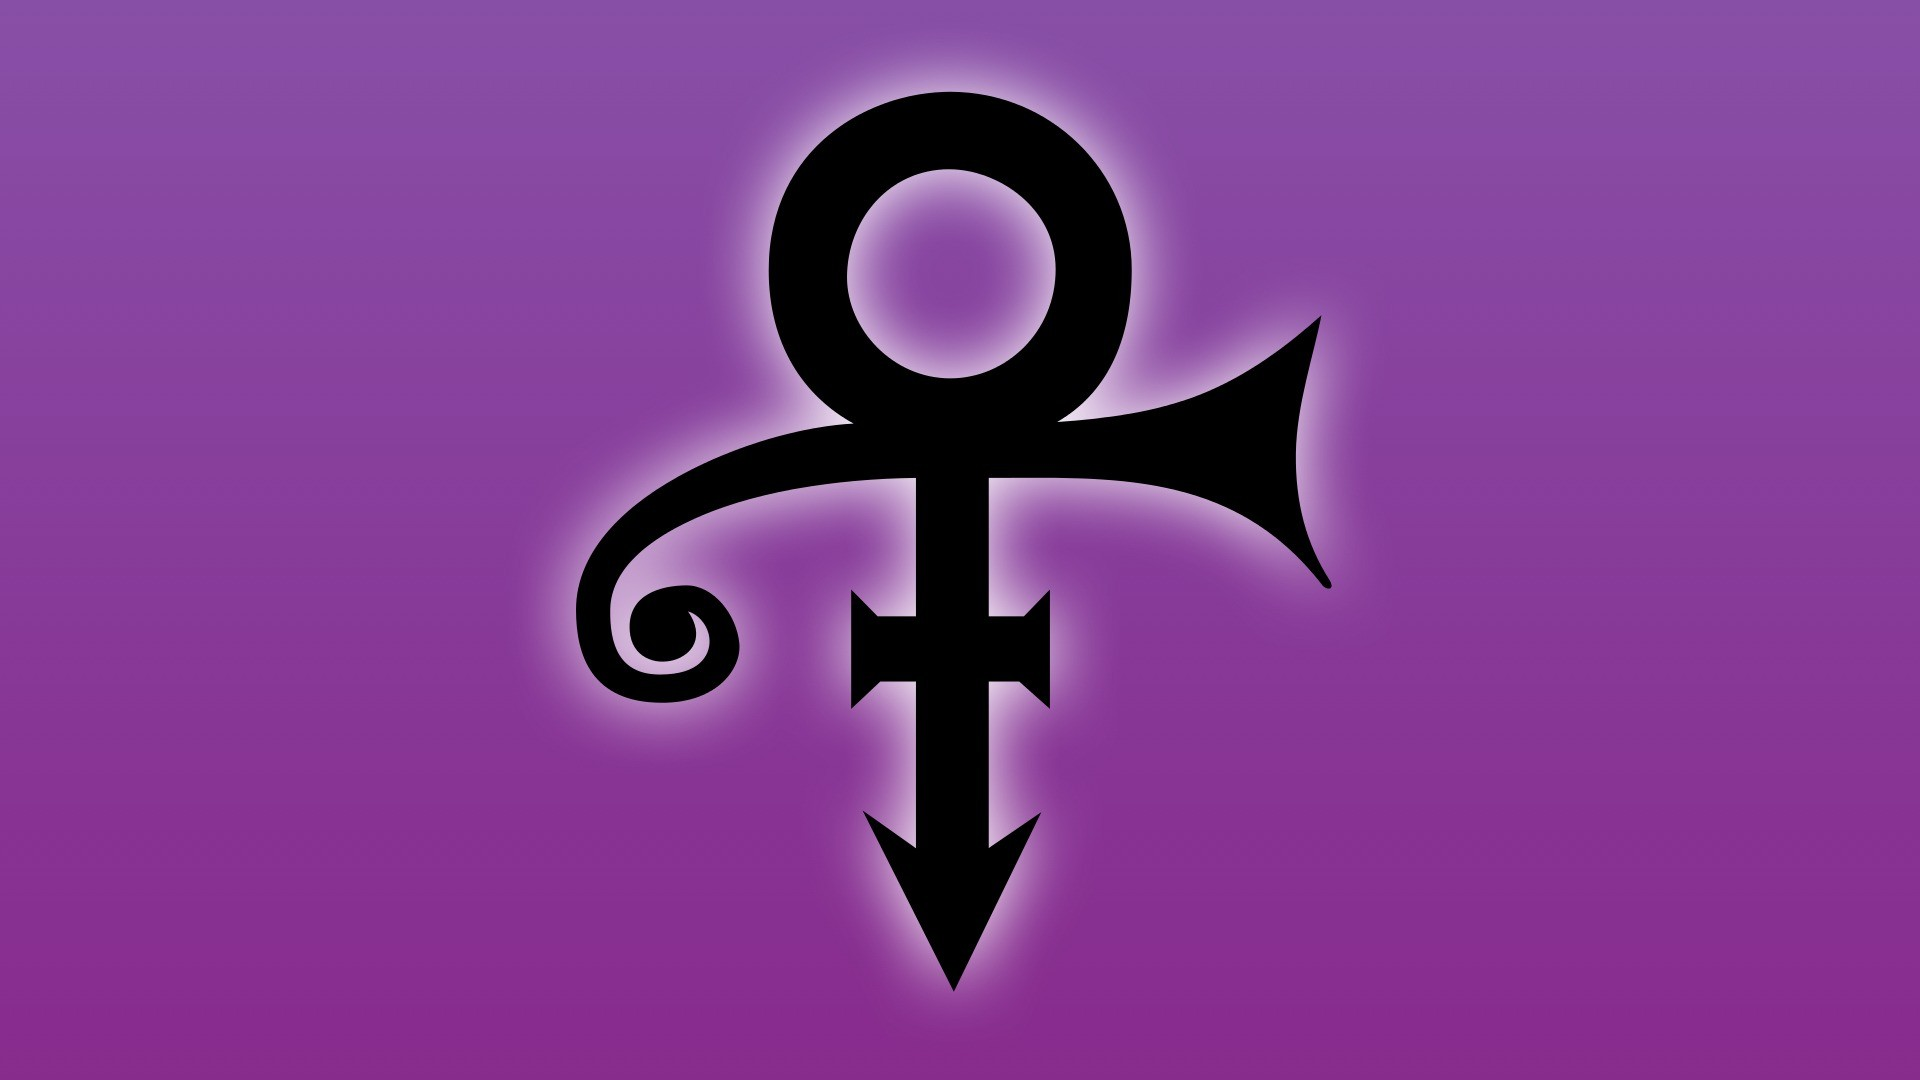 Prince as a Symbol for Abstraction